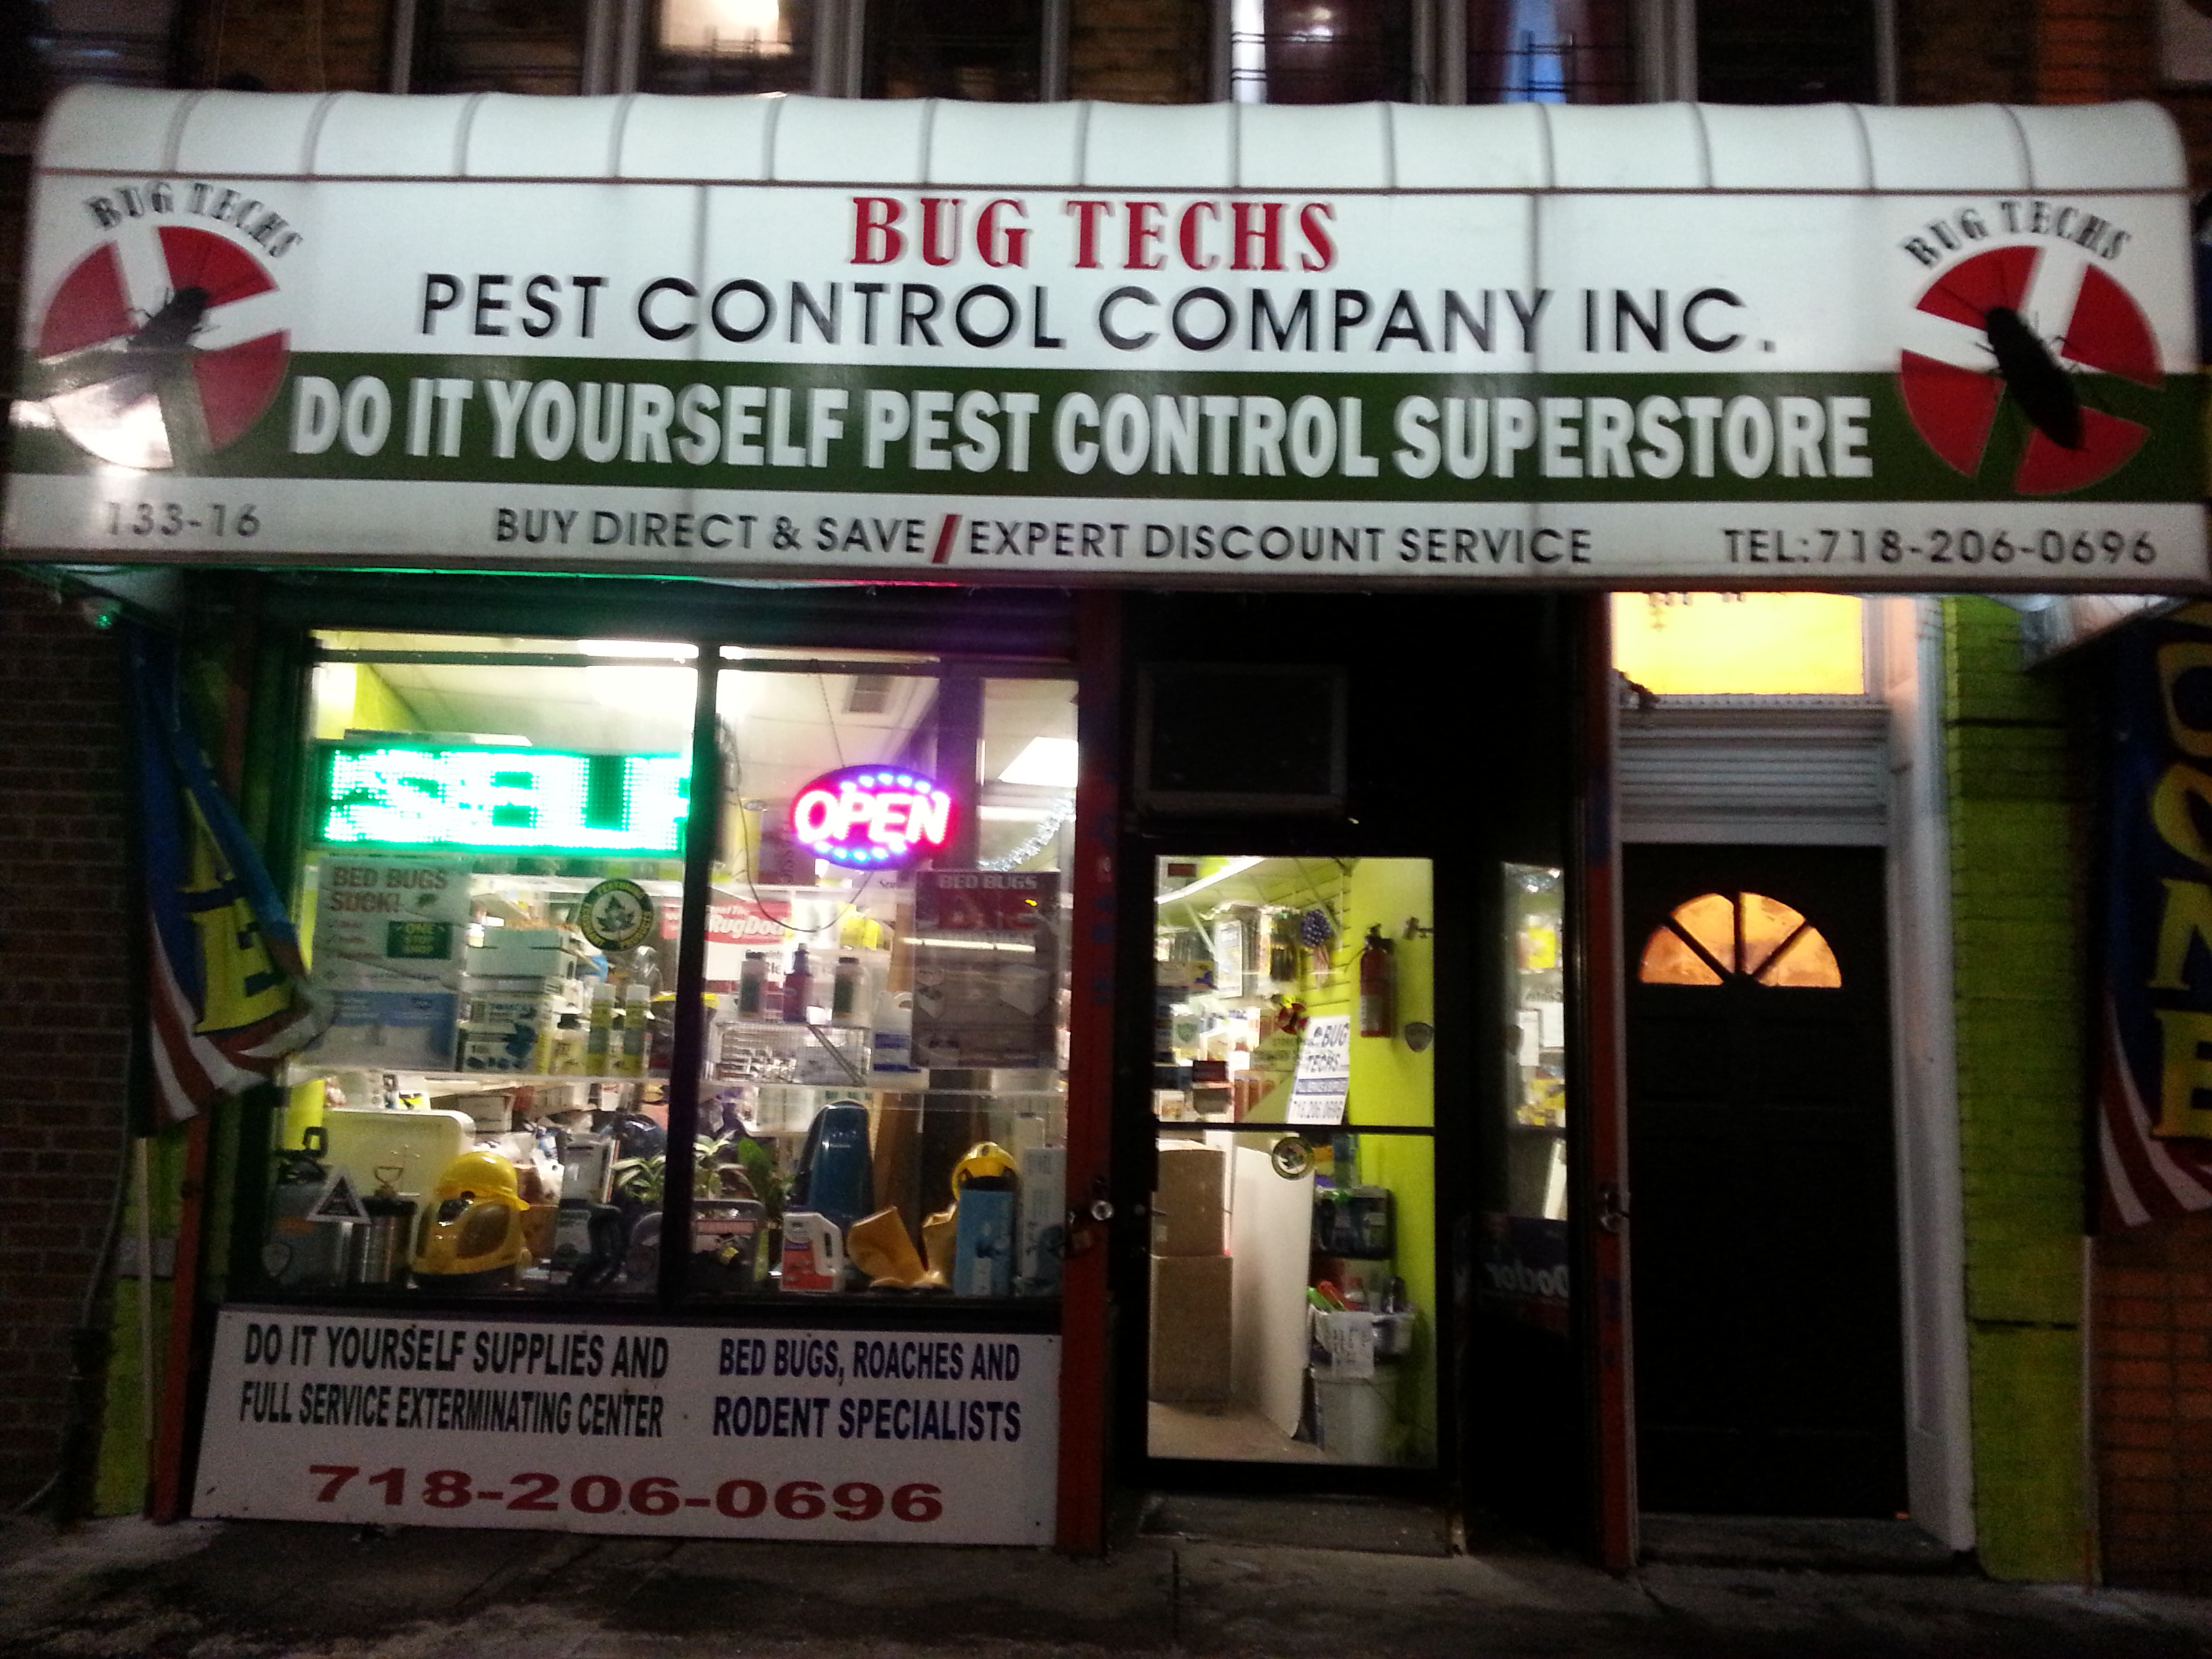 bug techs pest control company inc coupons near me in new york